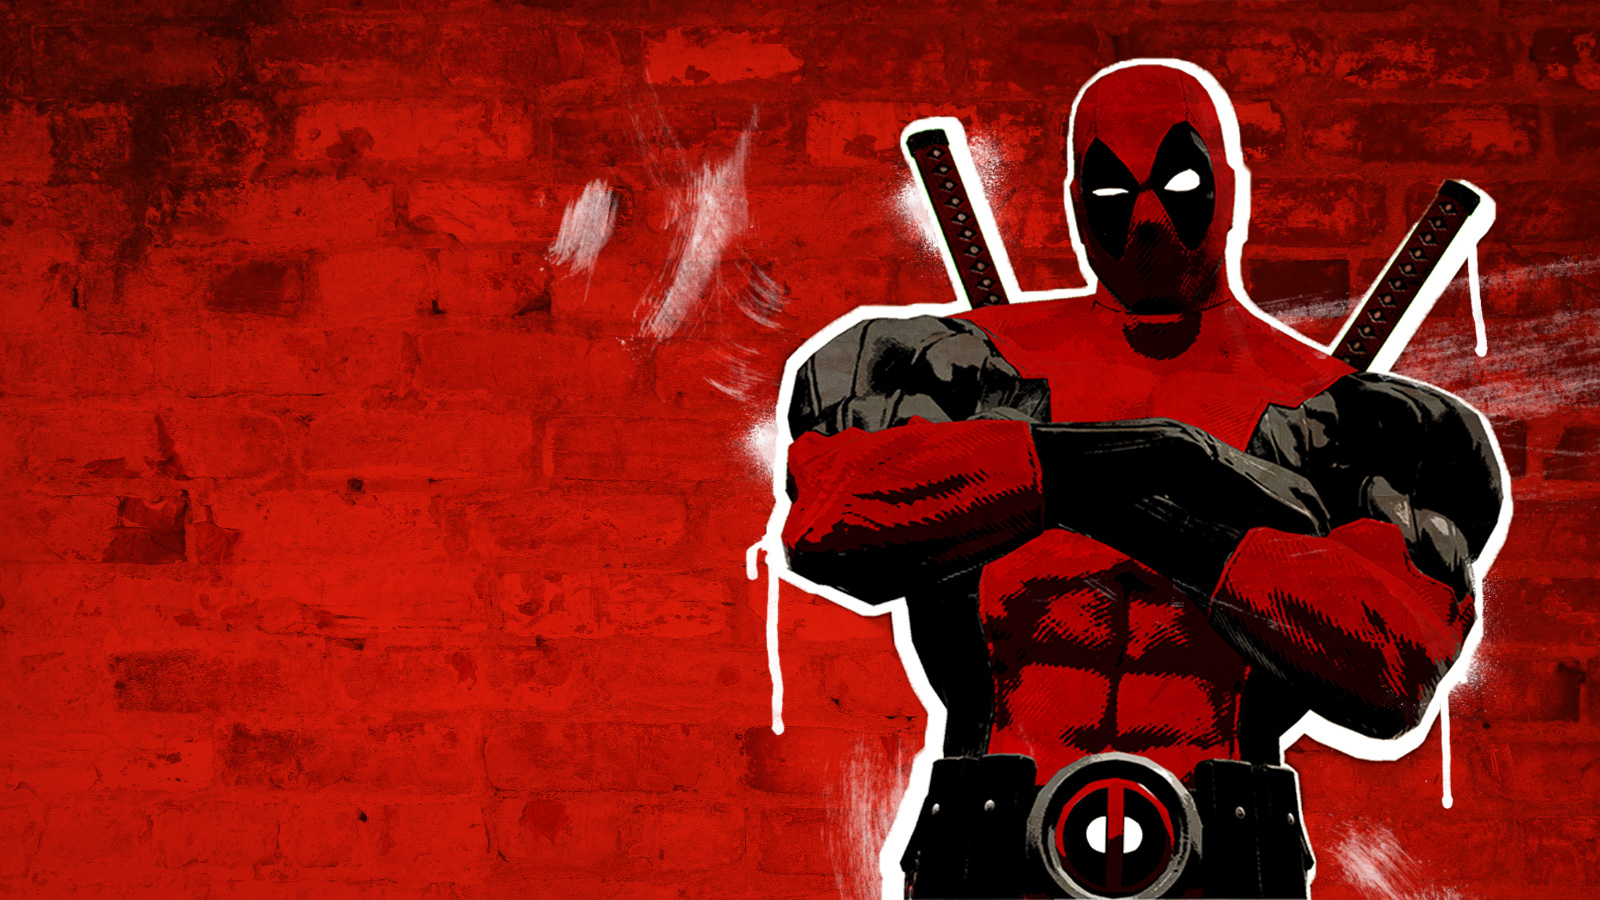 545 Deadpool HD Wallpapers Backgrounds Wallpaper Abyss Page 1600x900